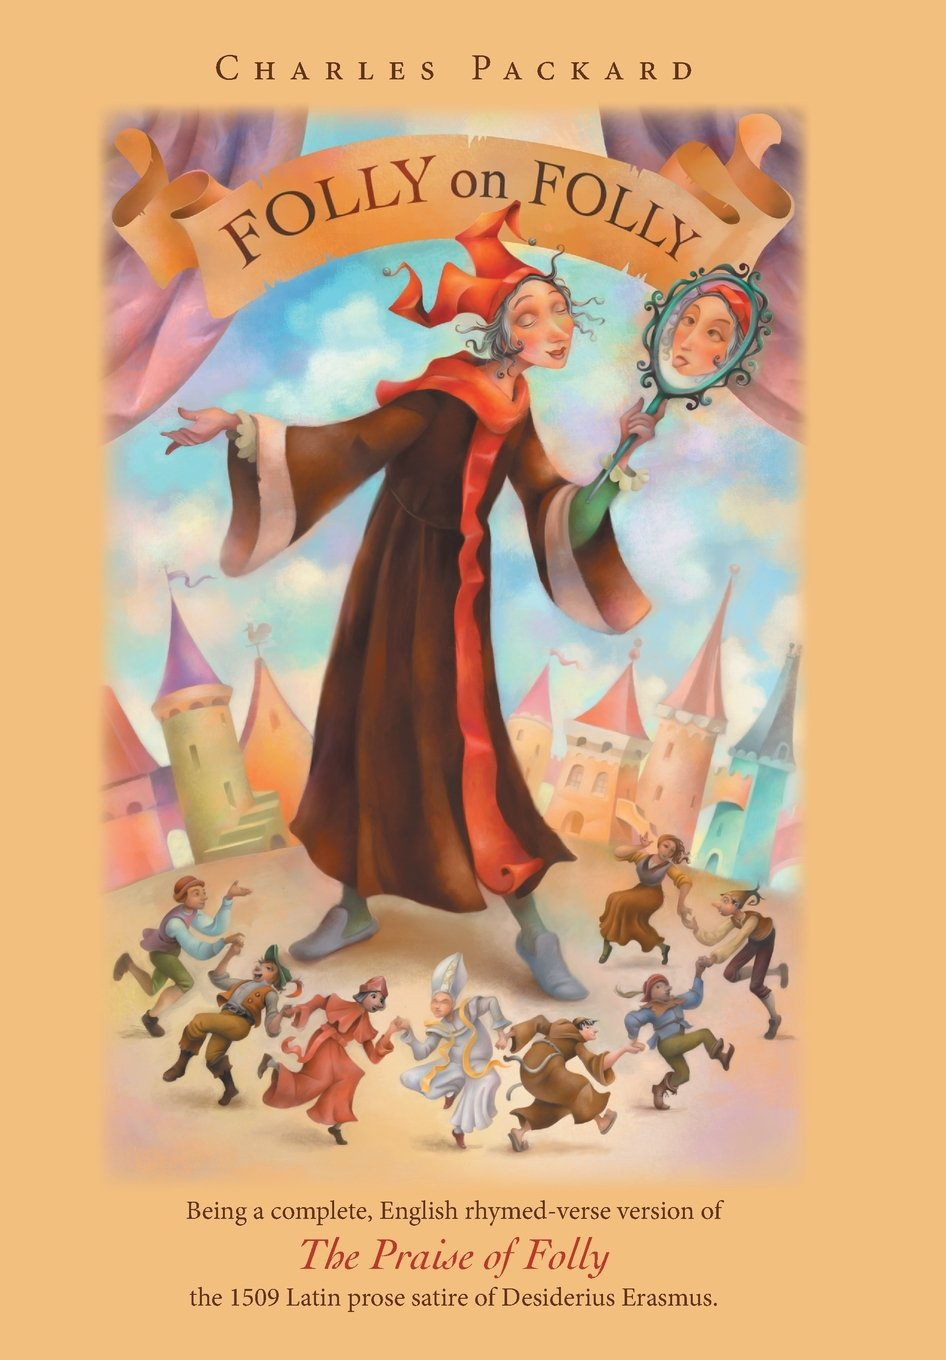 Download Folly on Folly: The Praise of Folly, a 1509 Latin prose Work, in rhymed English verse PDF